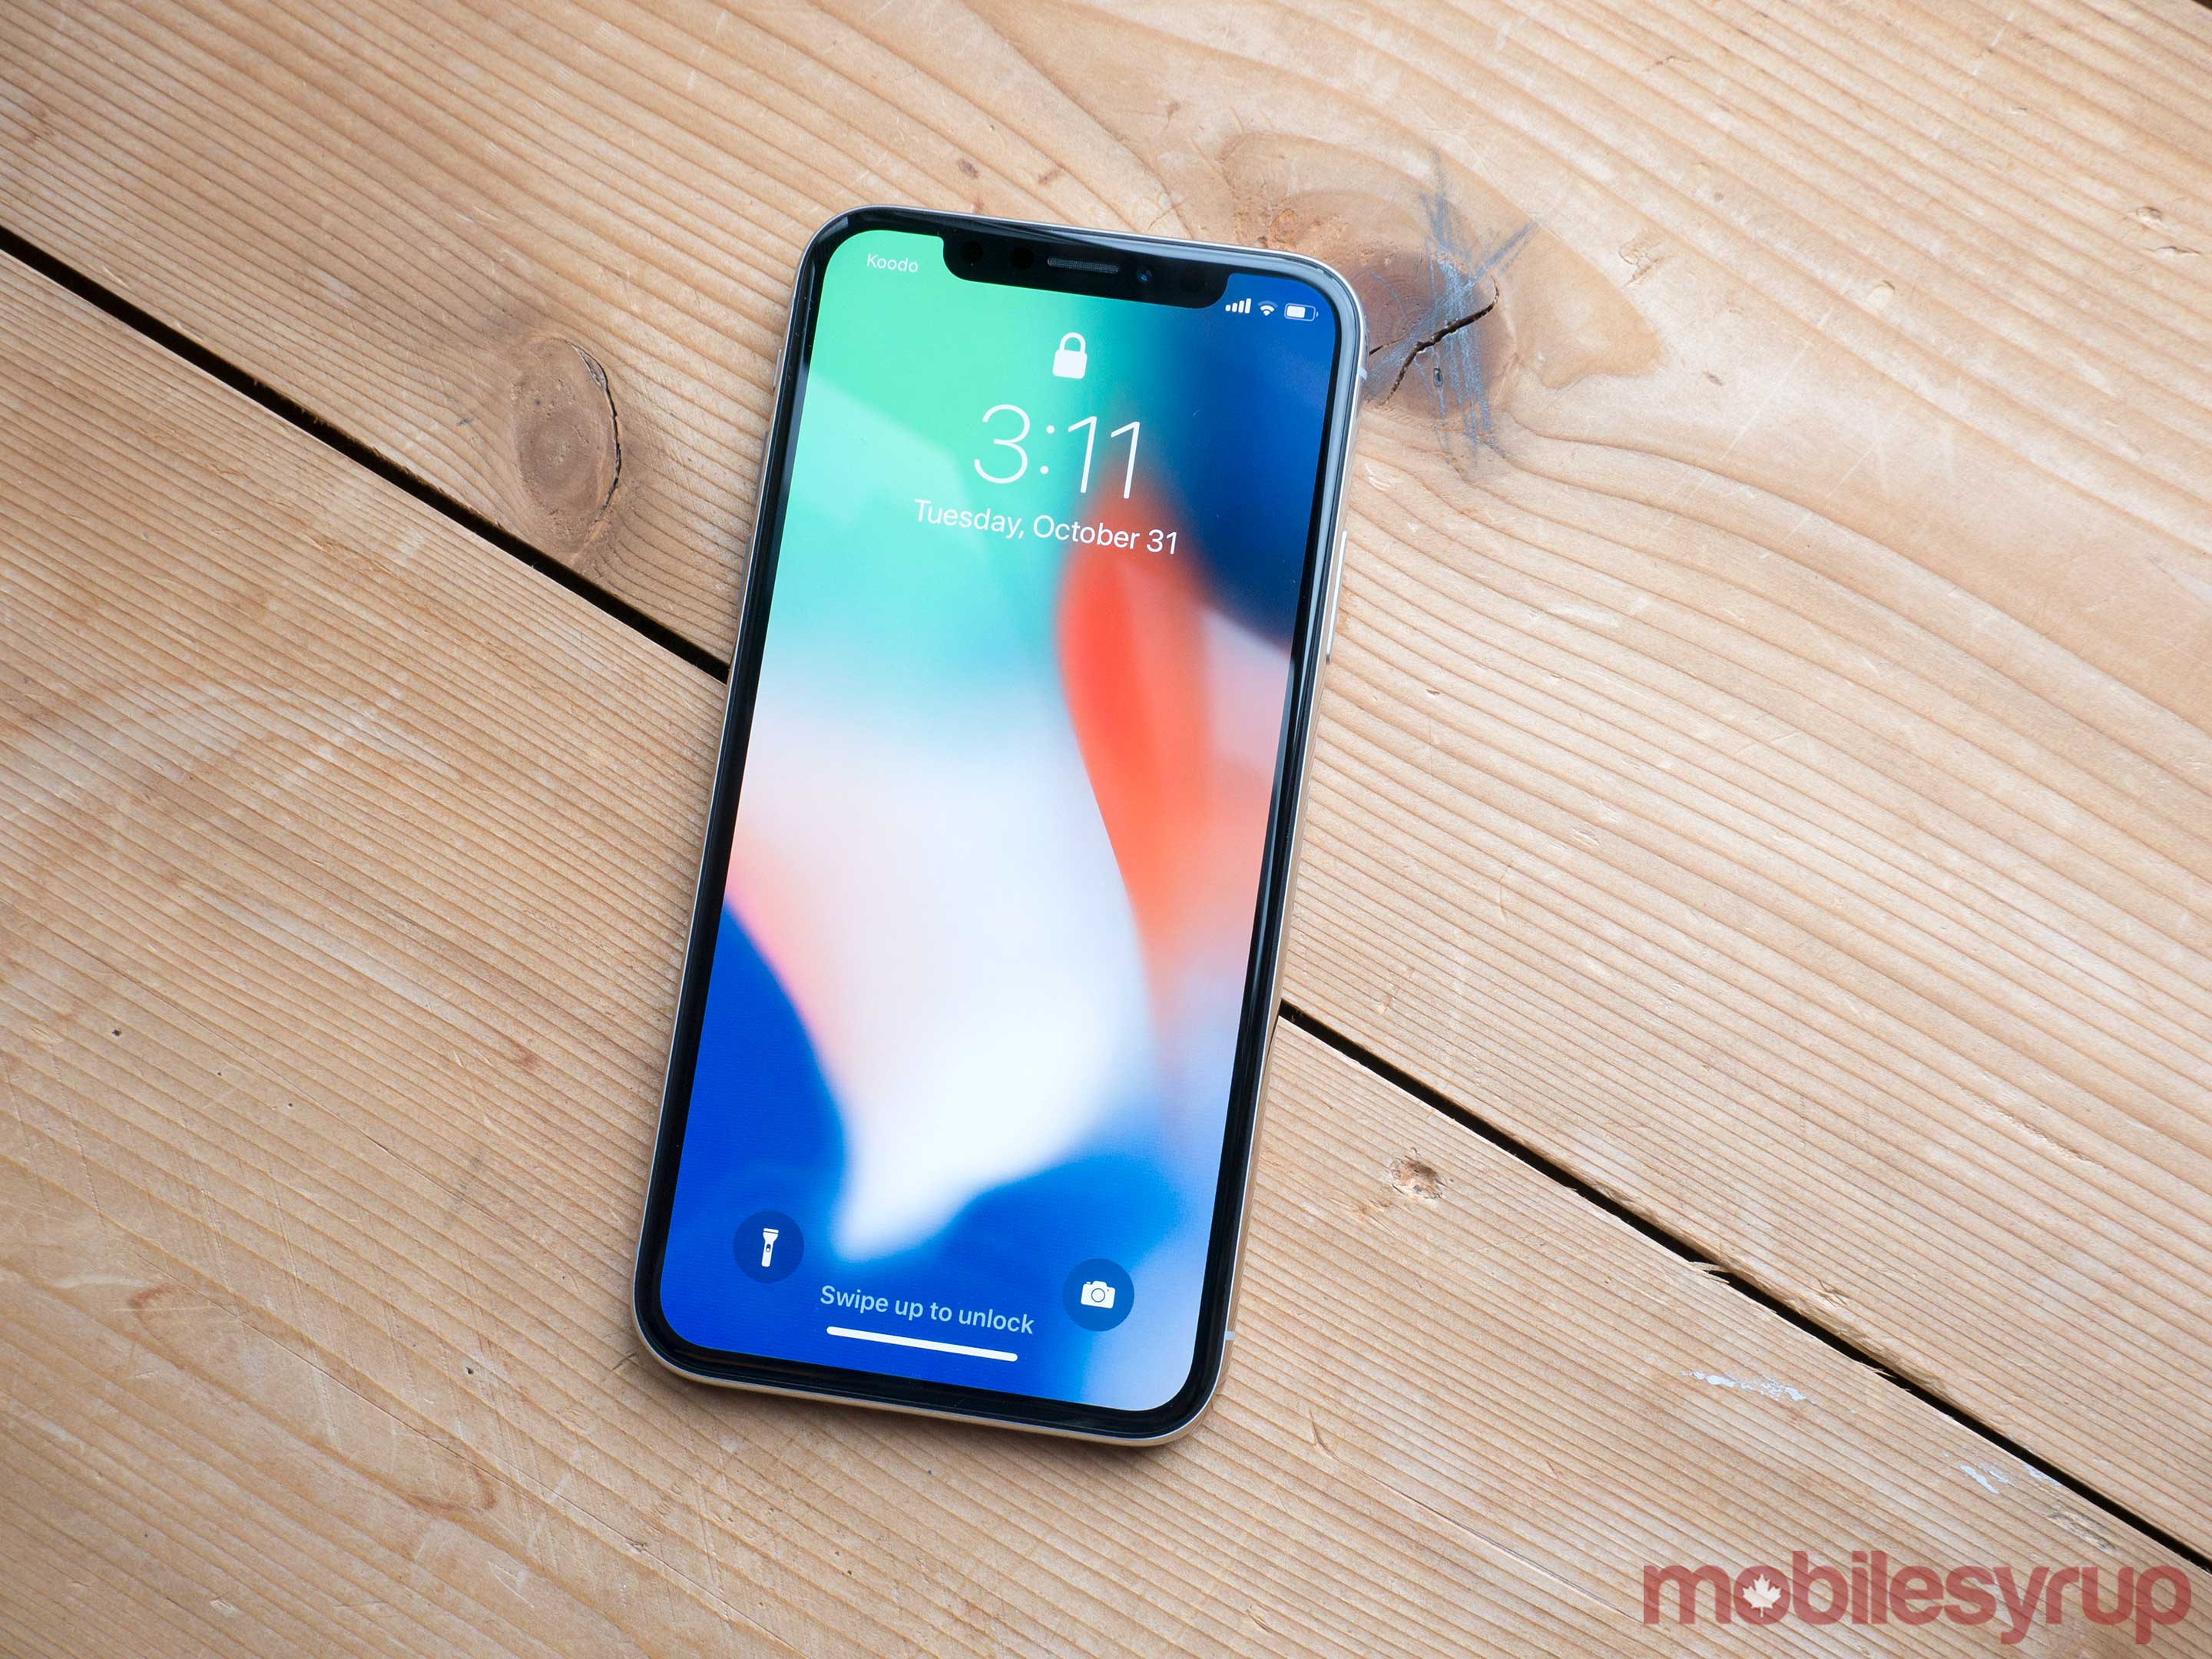 iPhone X on table